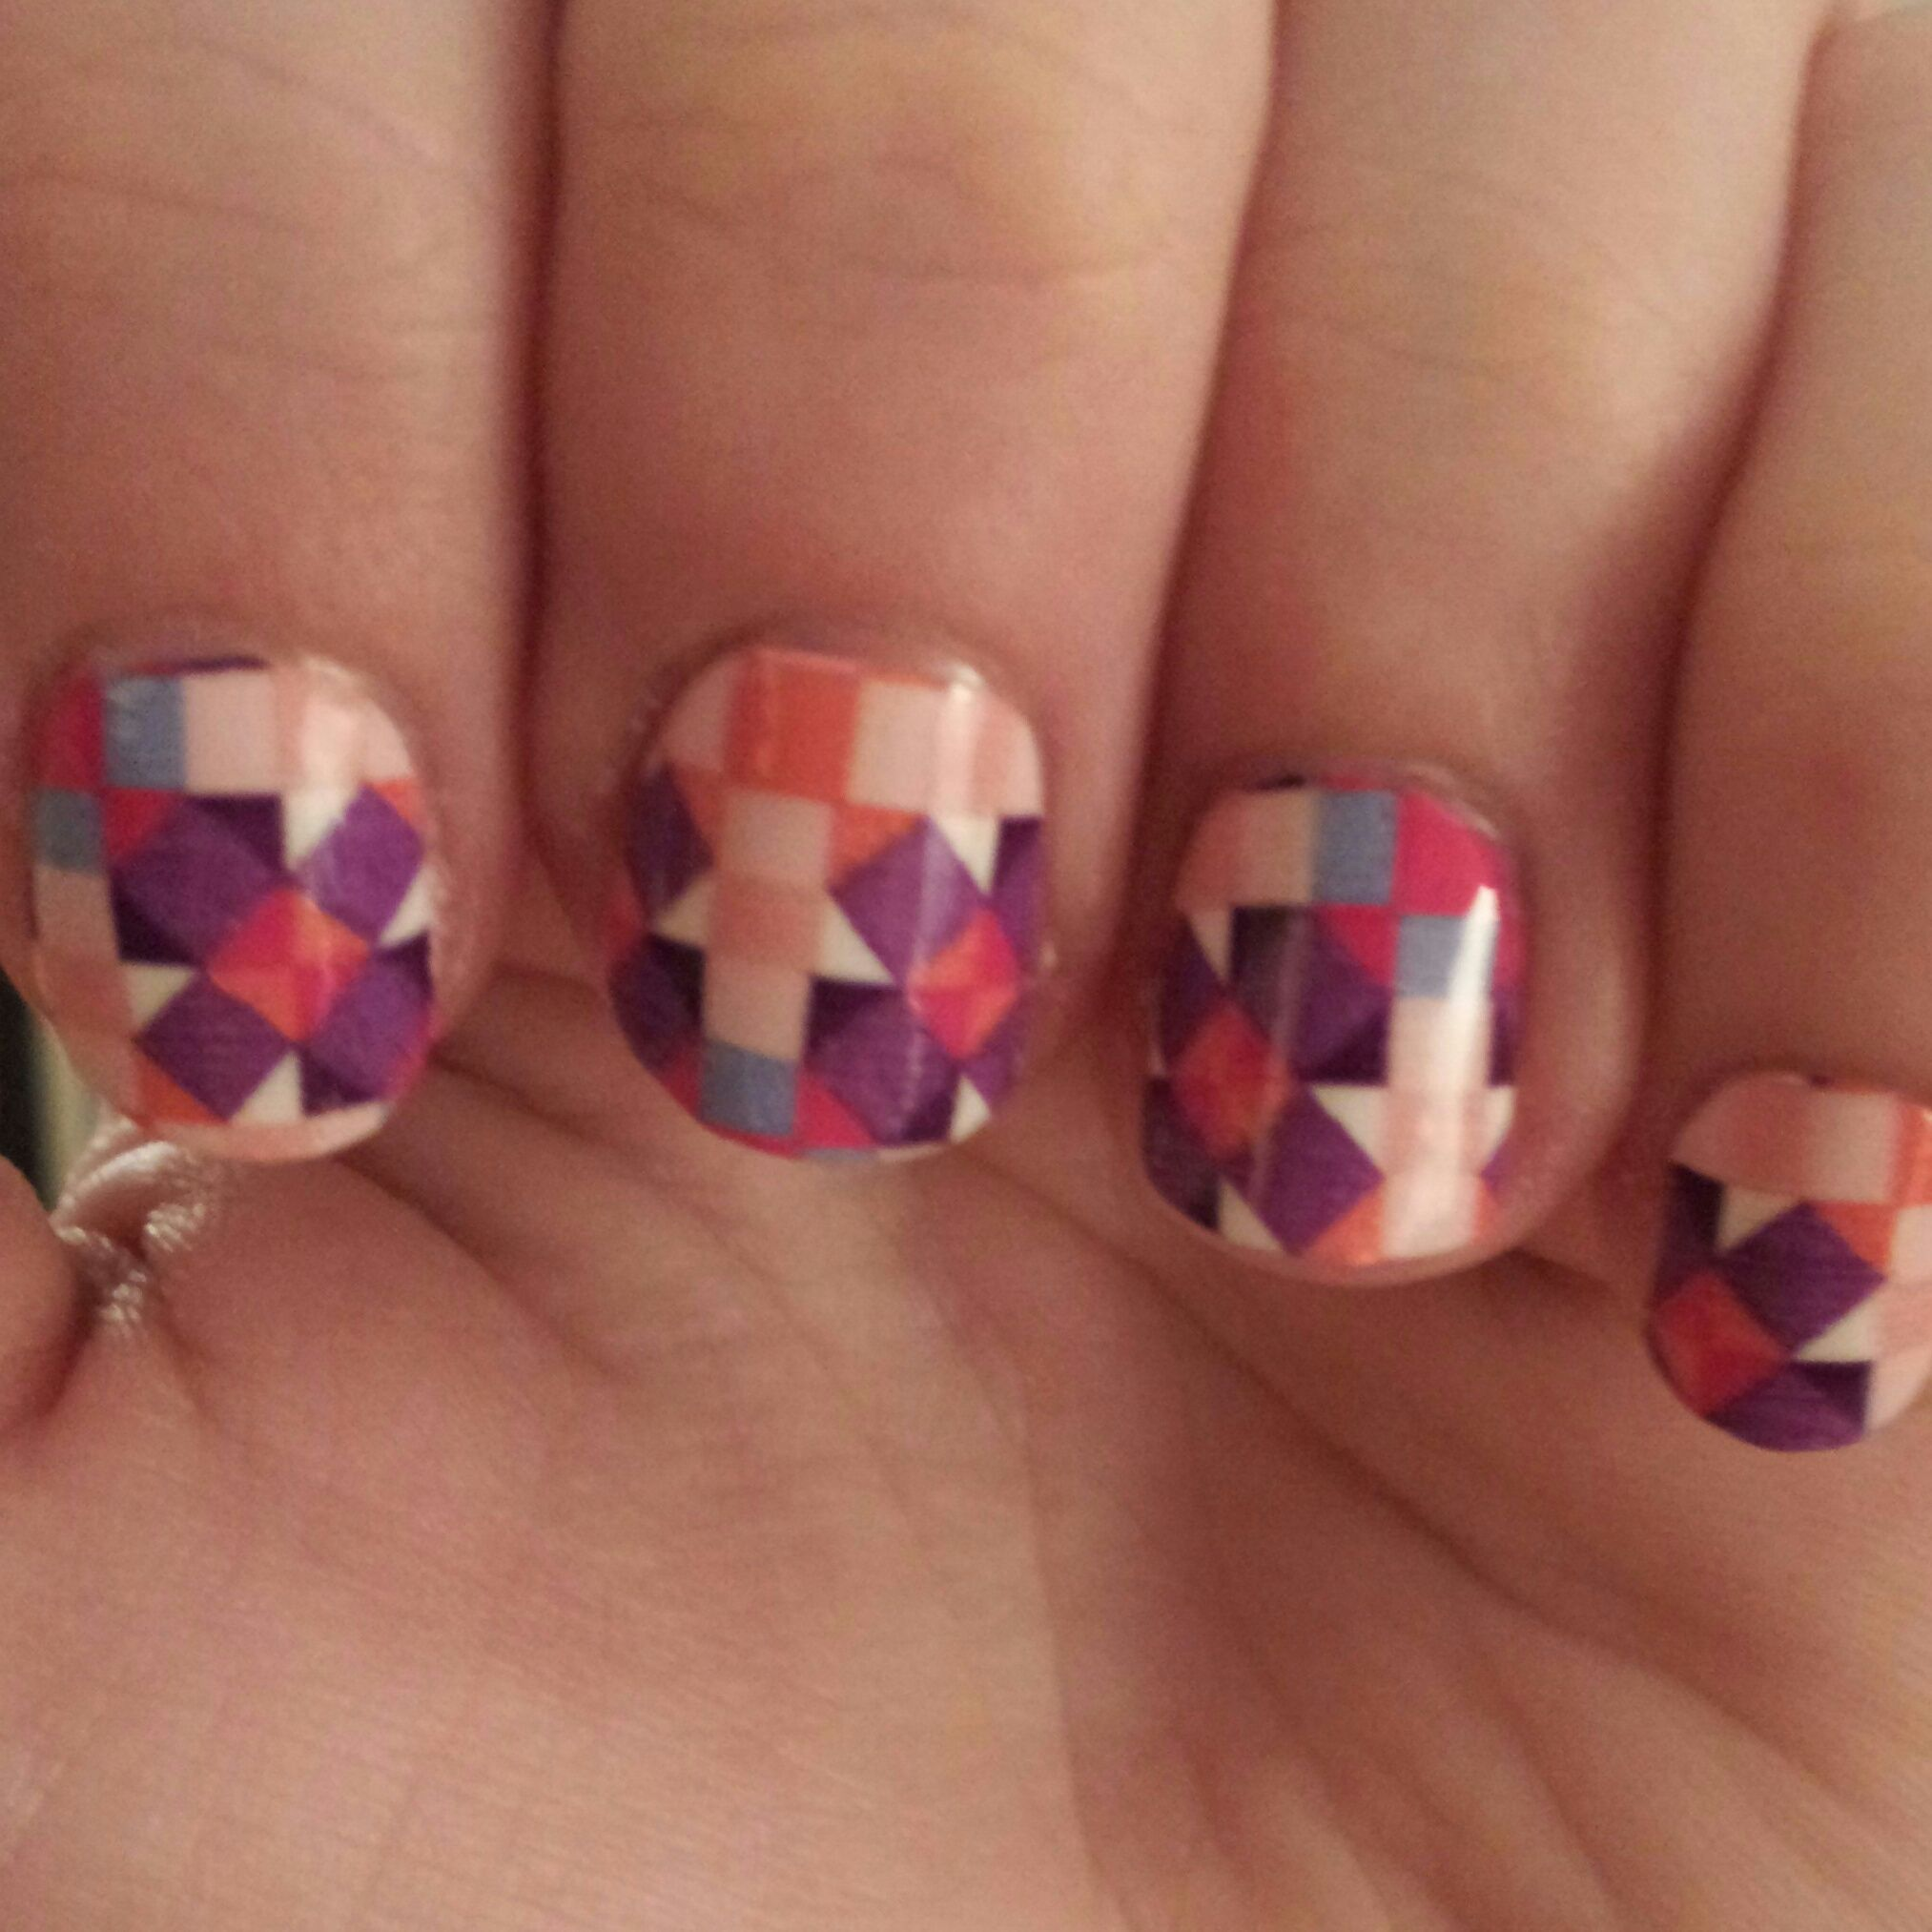 Sally Hansen nail strips in Mod About You. Nailed it.